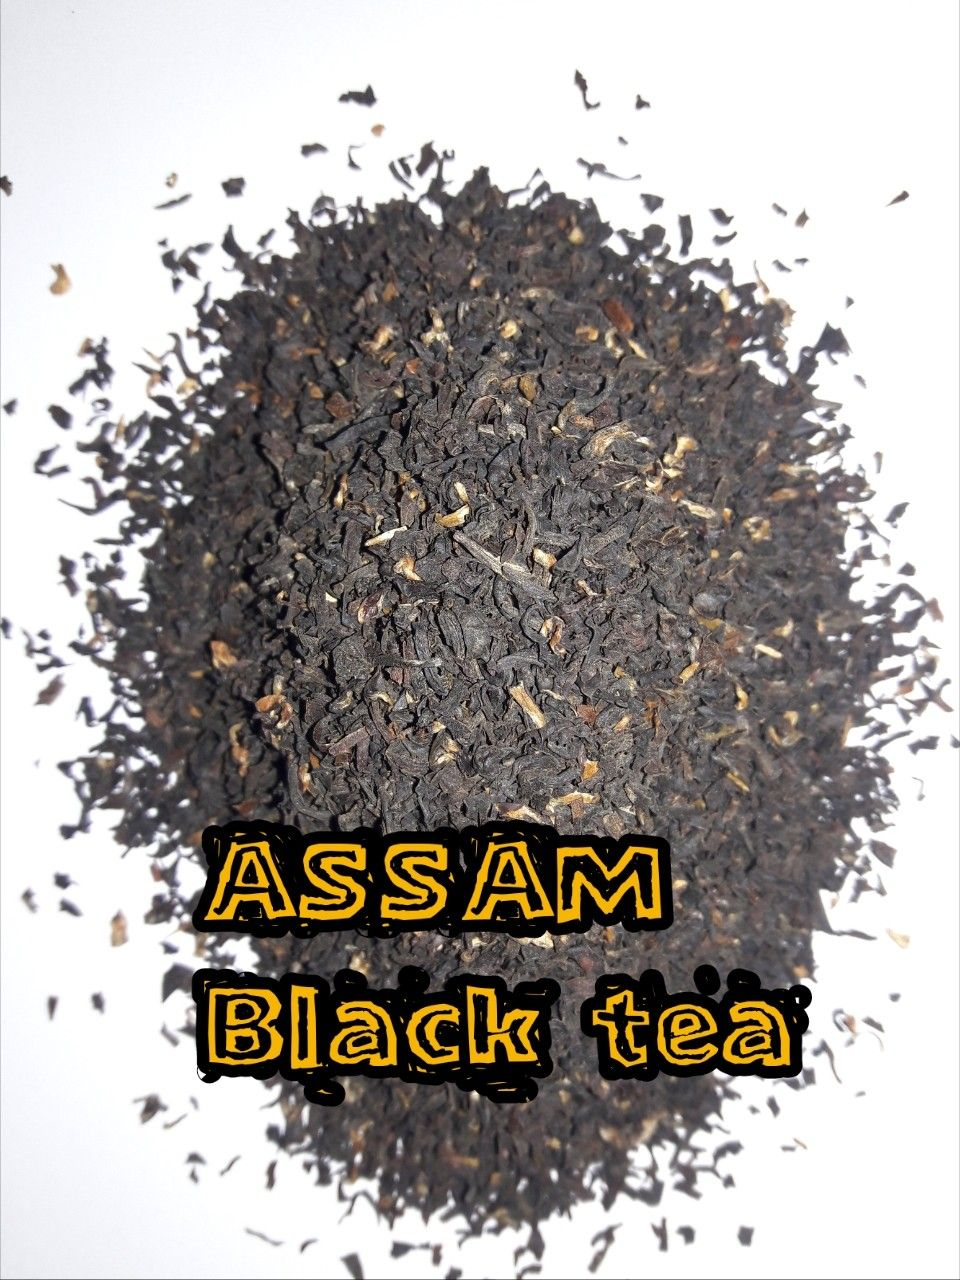 ASSAM (KONDOLI ESTATE) BLACK TEA How to dry basil, Black